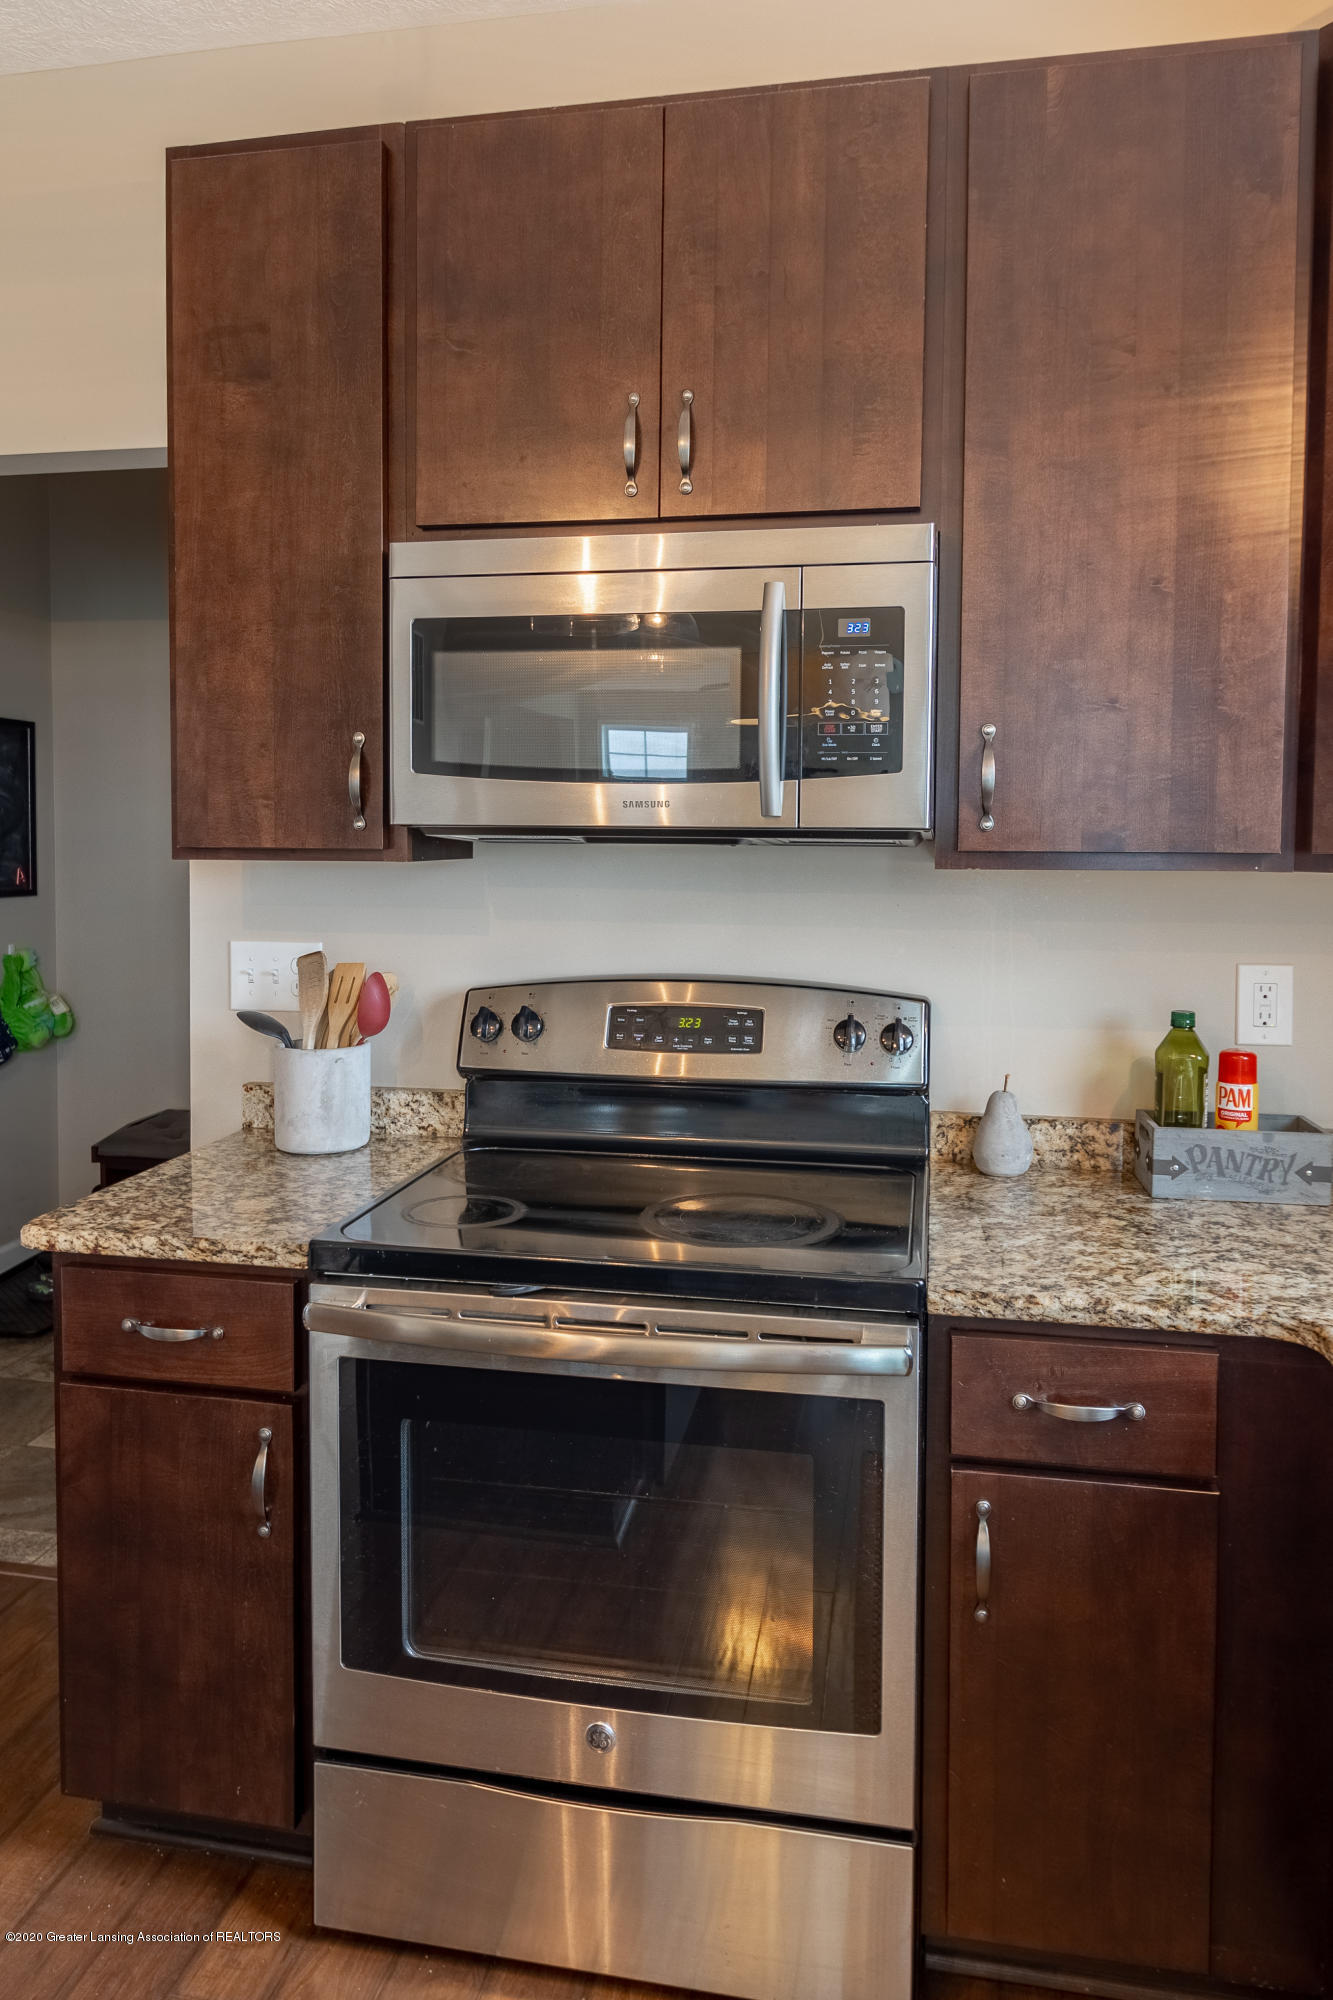 3758 Shearwater Ln - Stainless steel appliances - 20